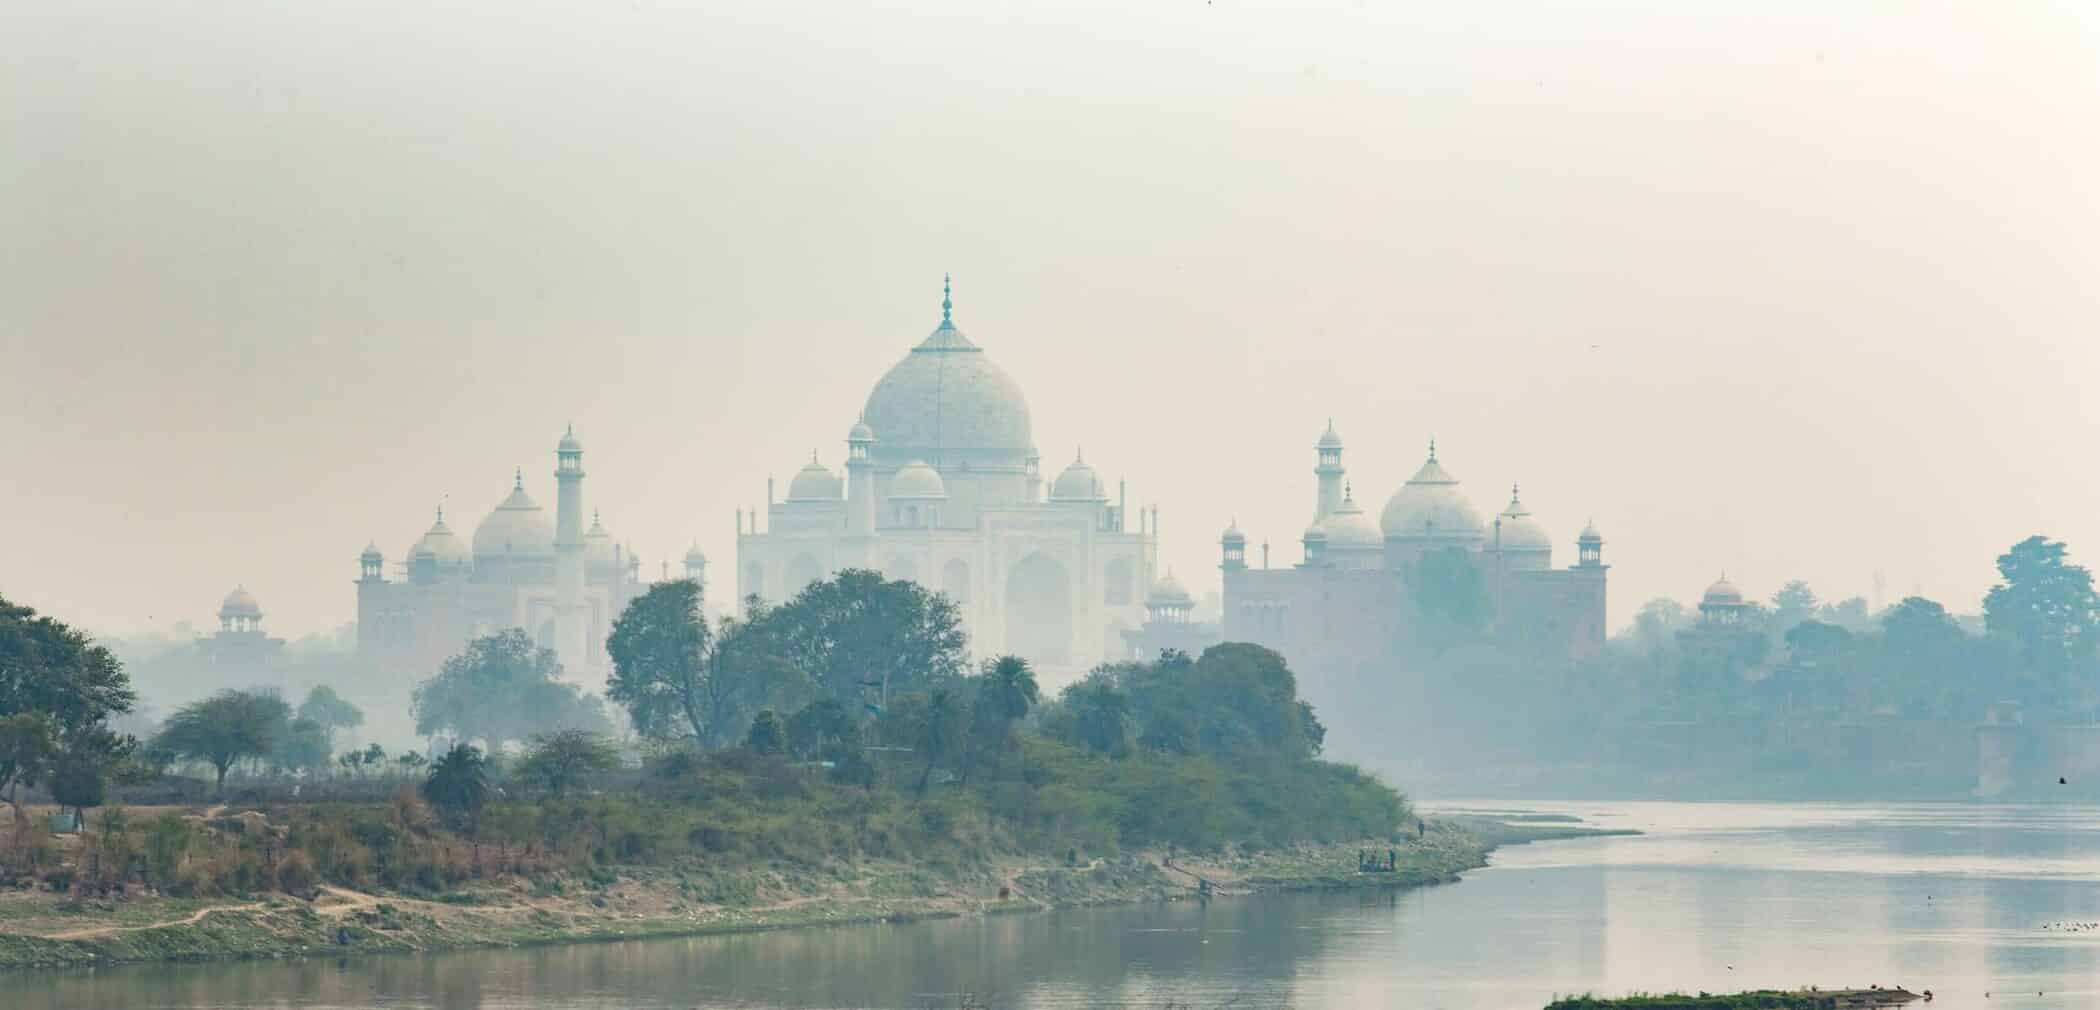 Agra, Taj Mahal, Landmark, architecture, INDIA, indian, river, february, Architectural, building,